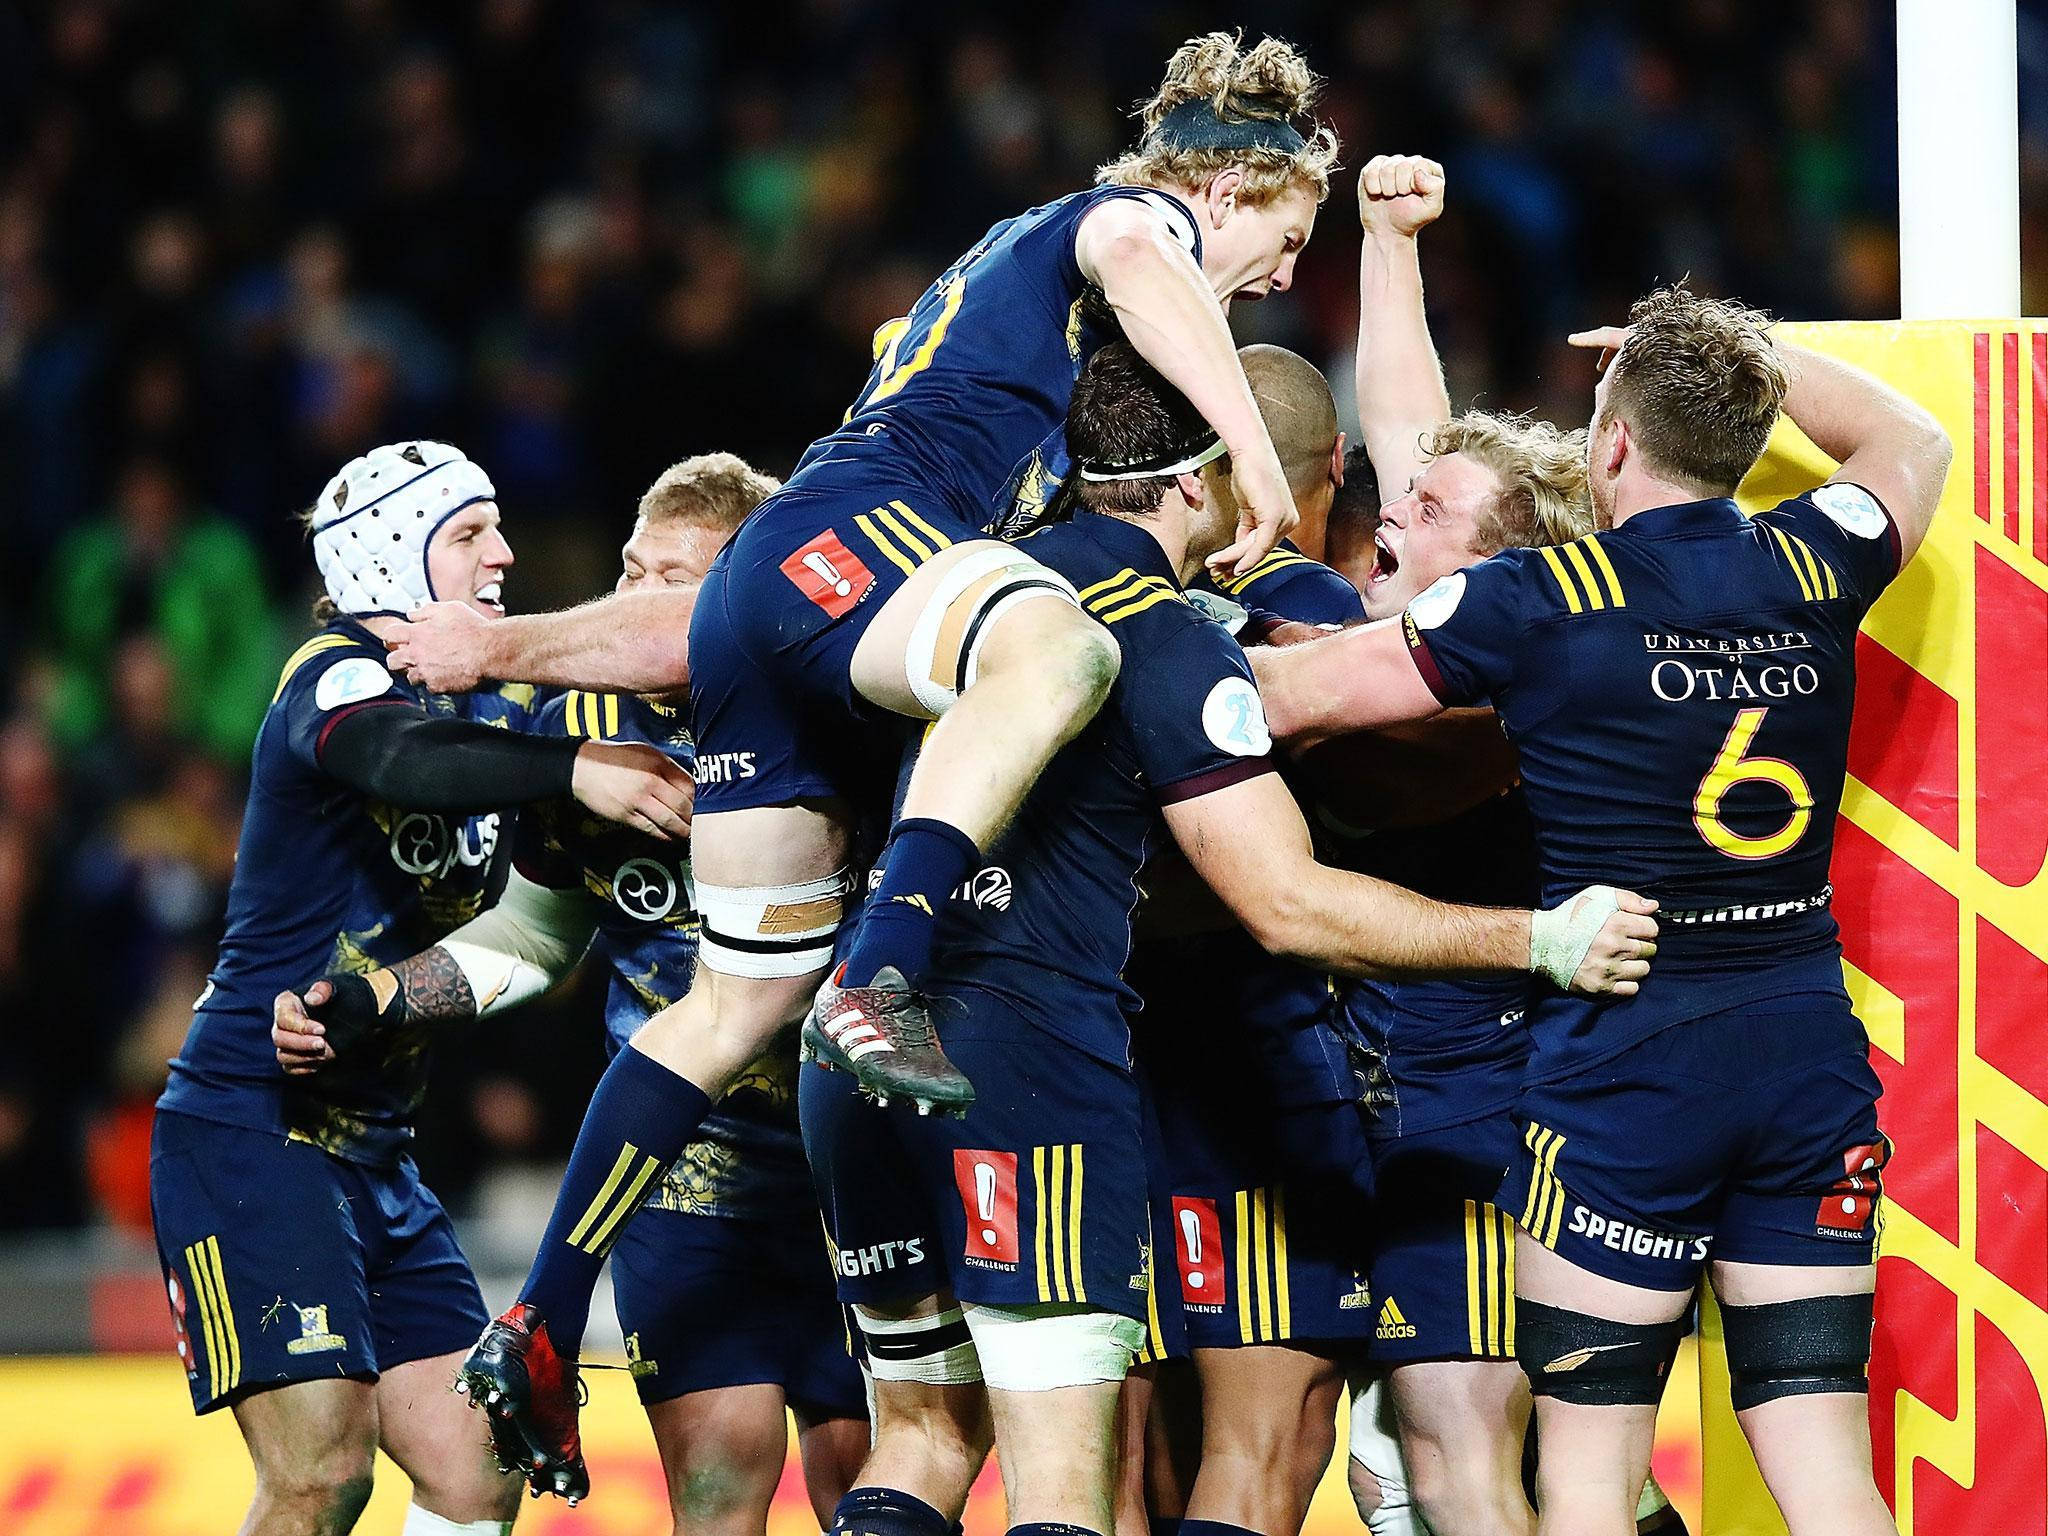 British And Irish Lions Vs Highlanders Second Defeat On Tour Of New